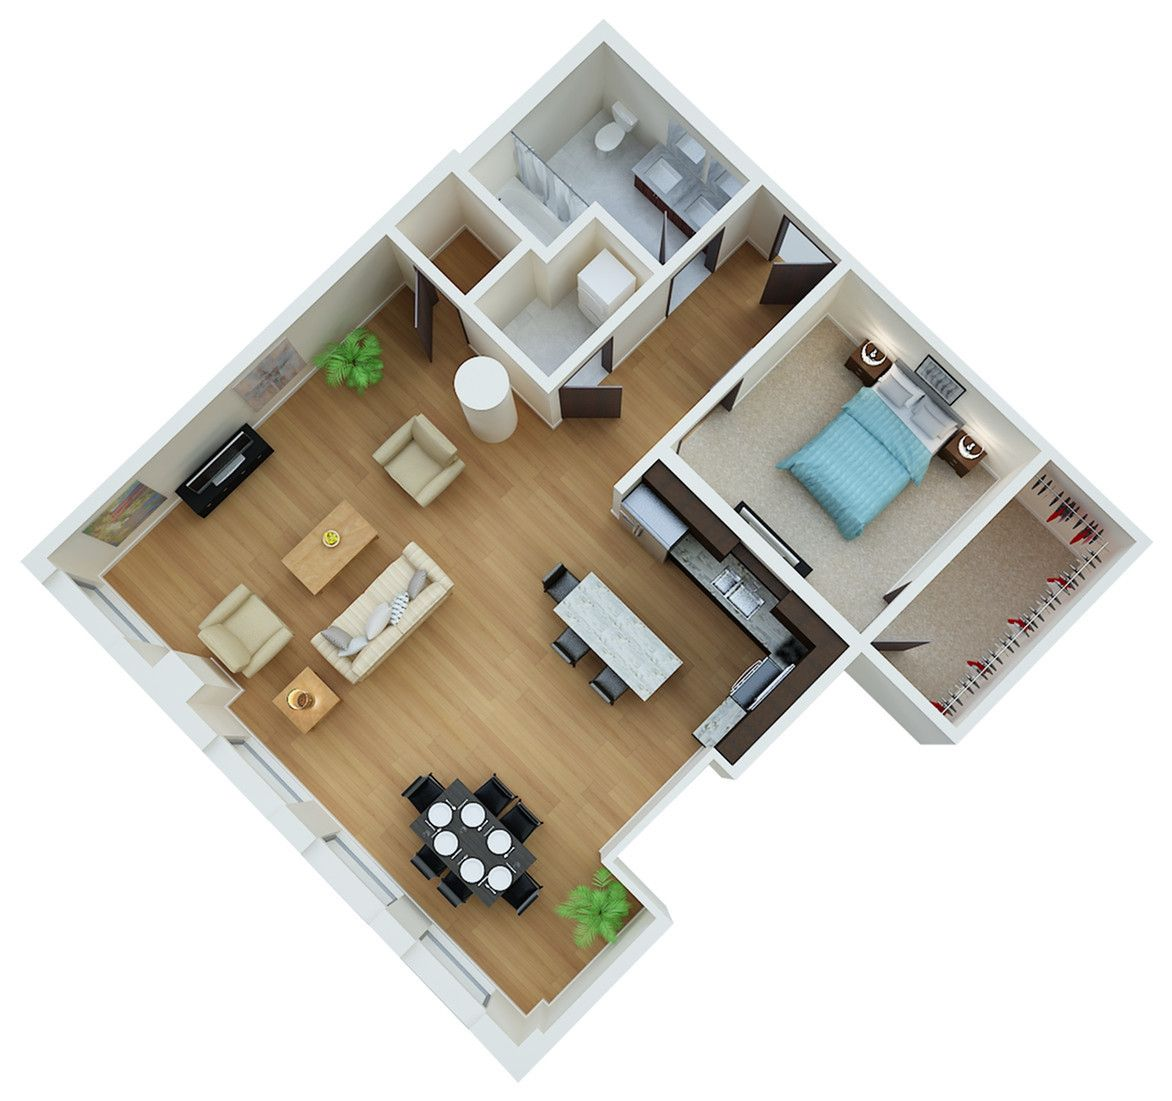 Irvine 1 Bedroom Small House Plans Bedroom Floor Plans House Layouts